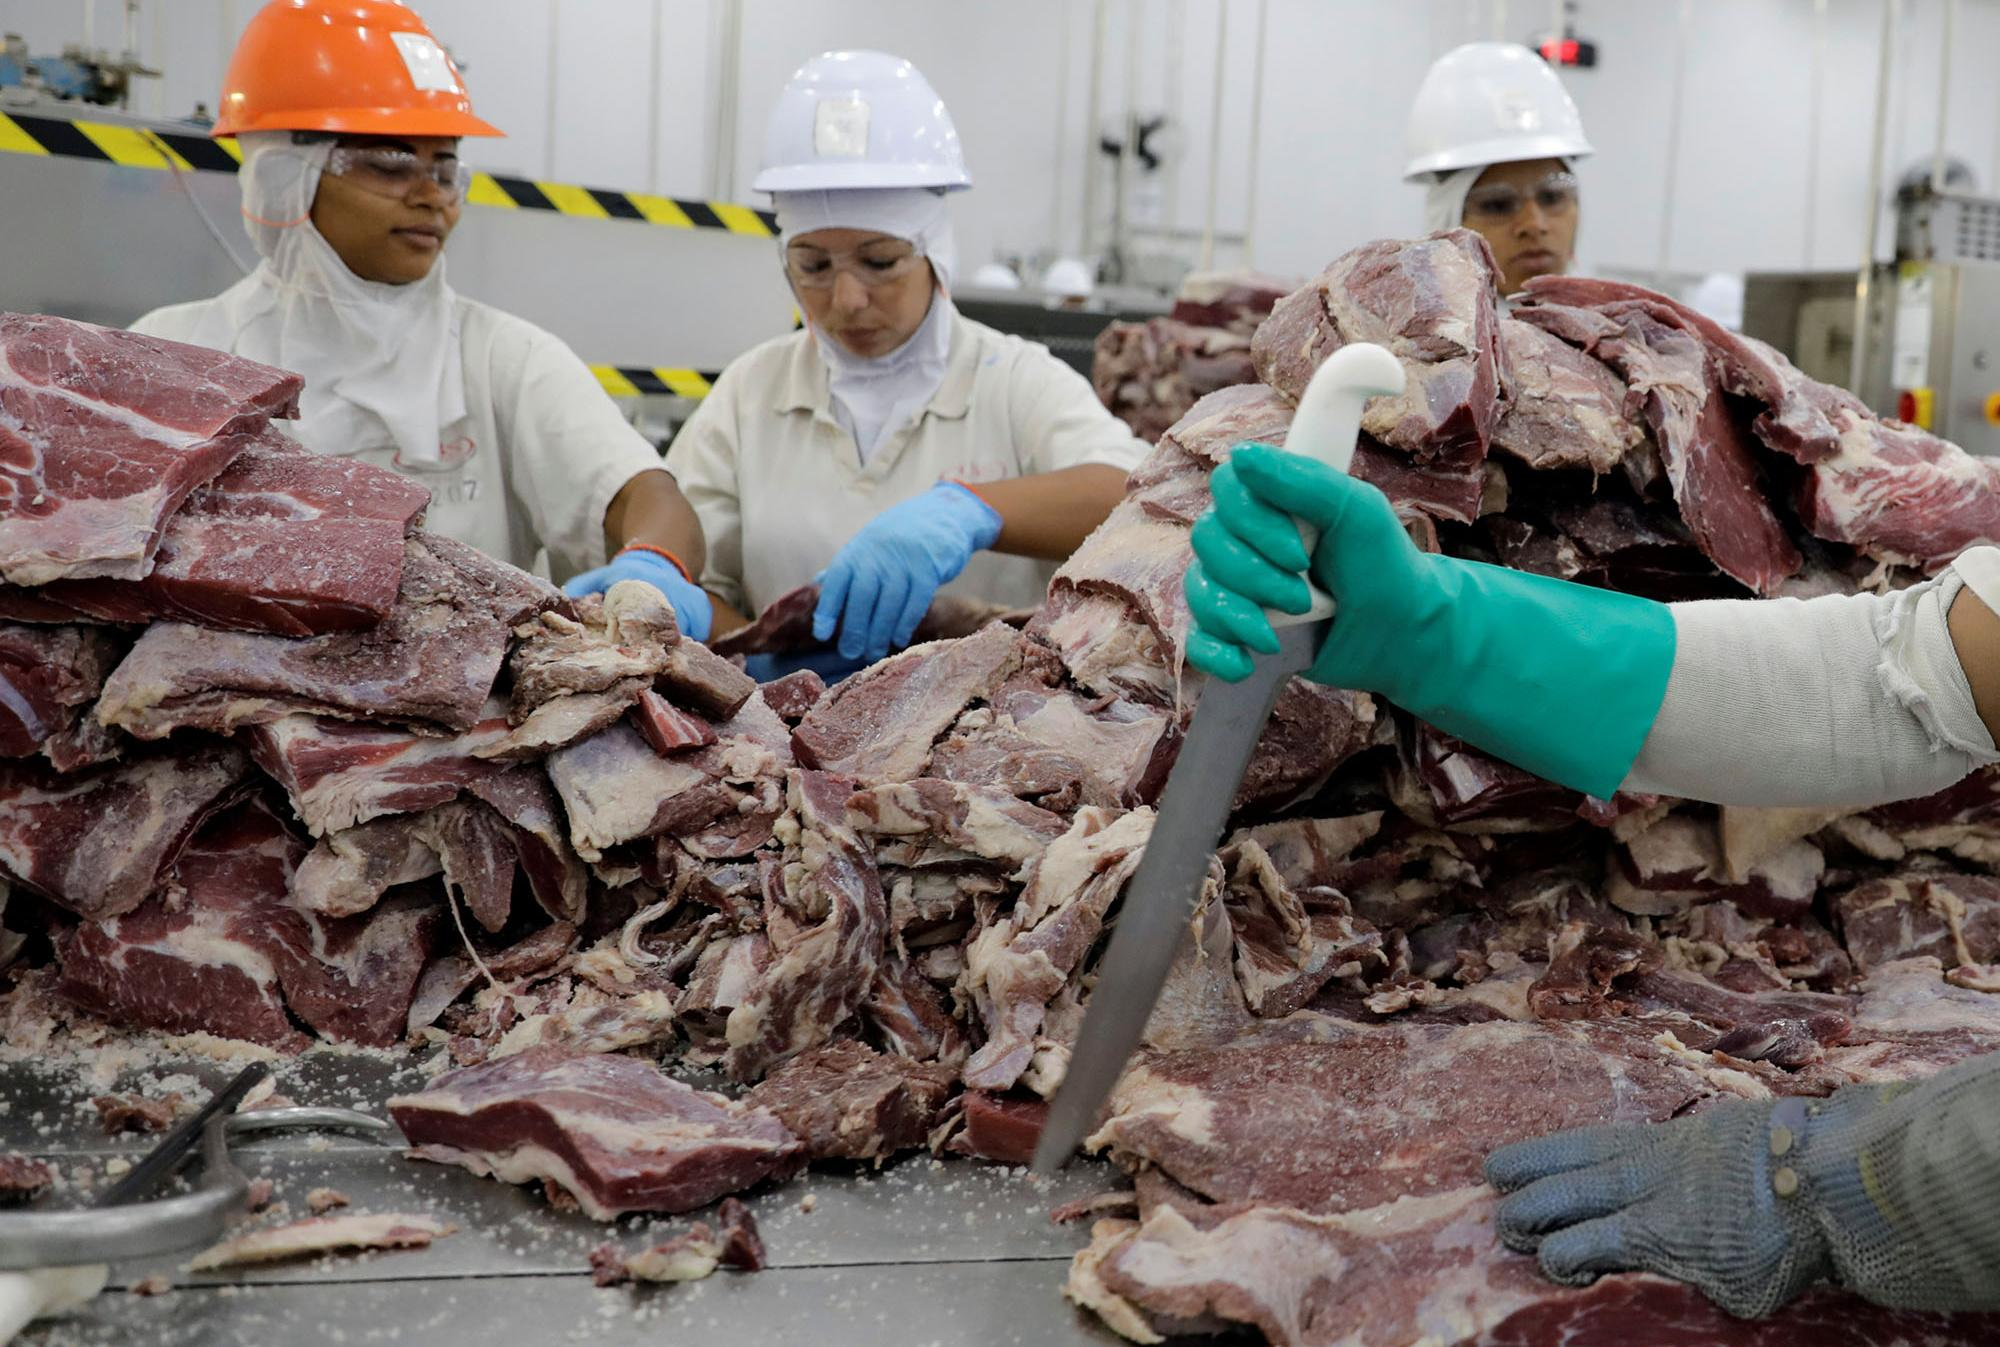 Meat company faces heat over 'cattle laundering' in Amazon supply chain